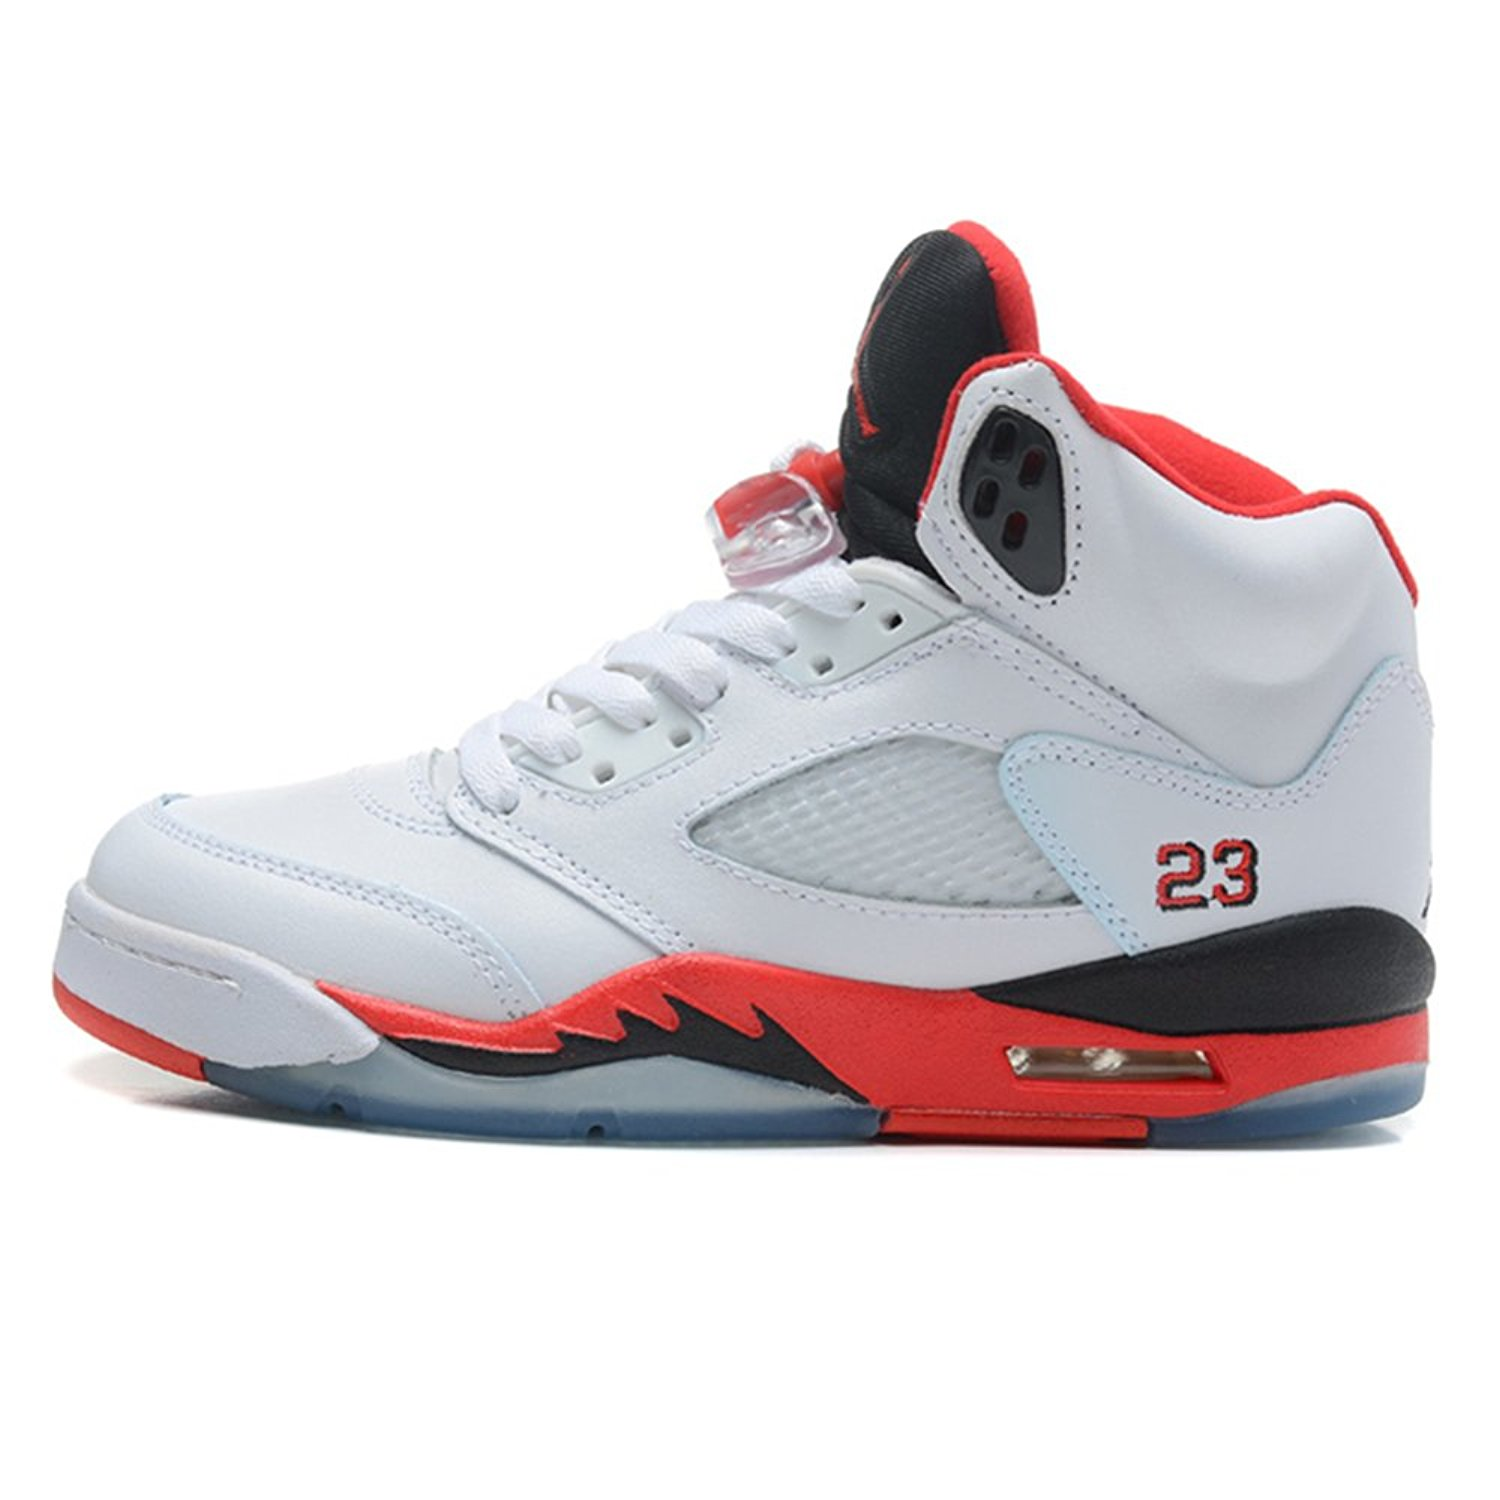 on sale a1faa 21b8d Get Quotations · Ambar Zuiga Jurado Men s Basketball Sneakers Joe Five  Generation Air Jordan V Fire Red AJ5 Red